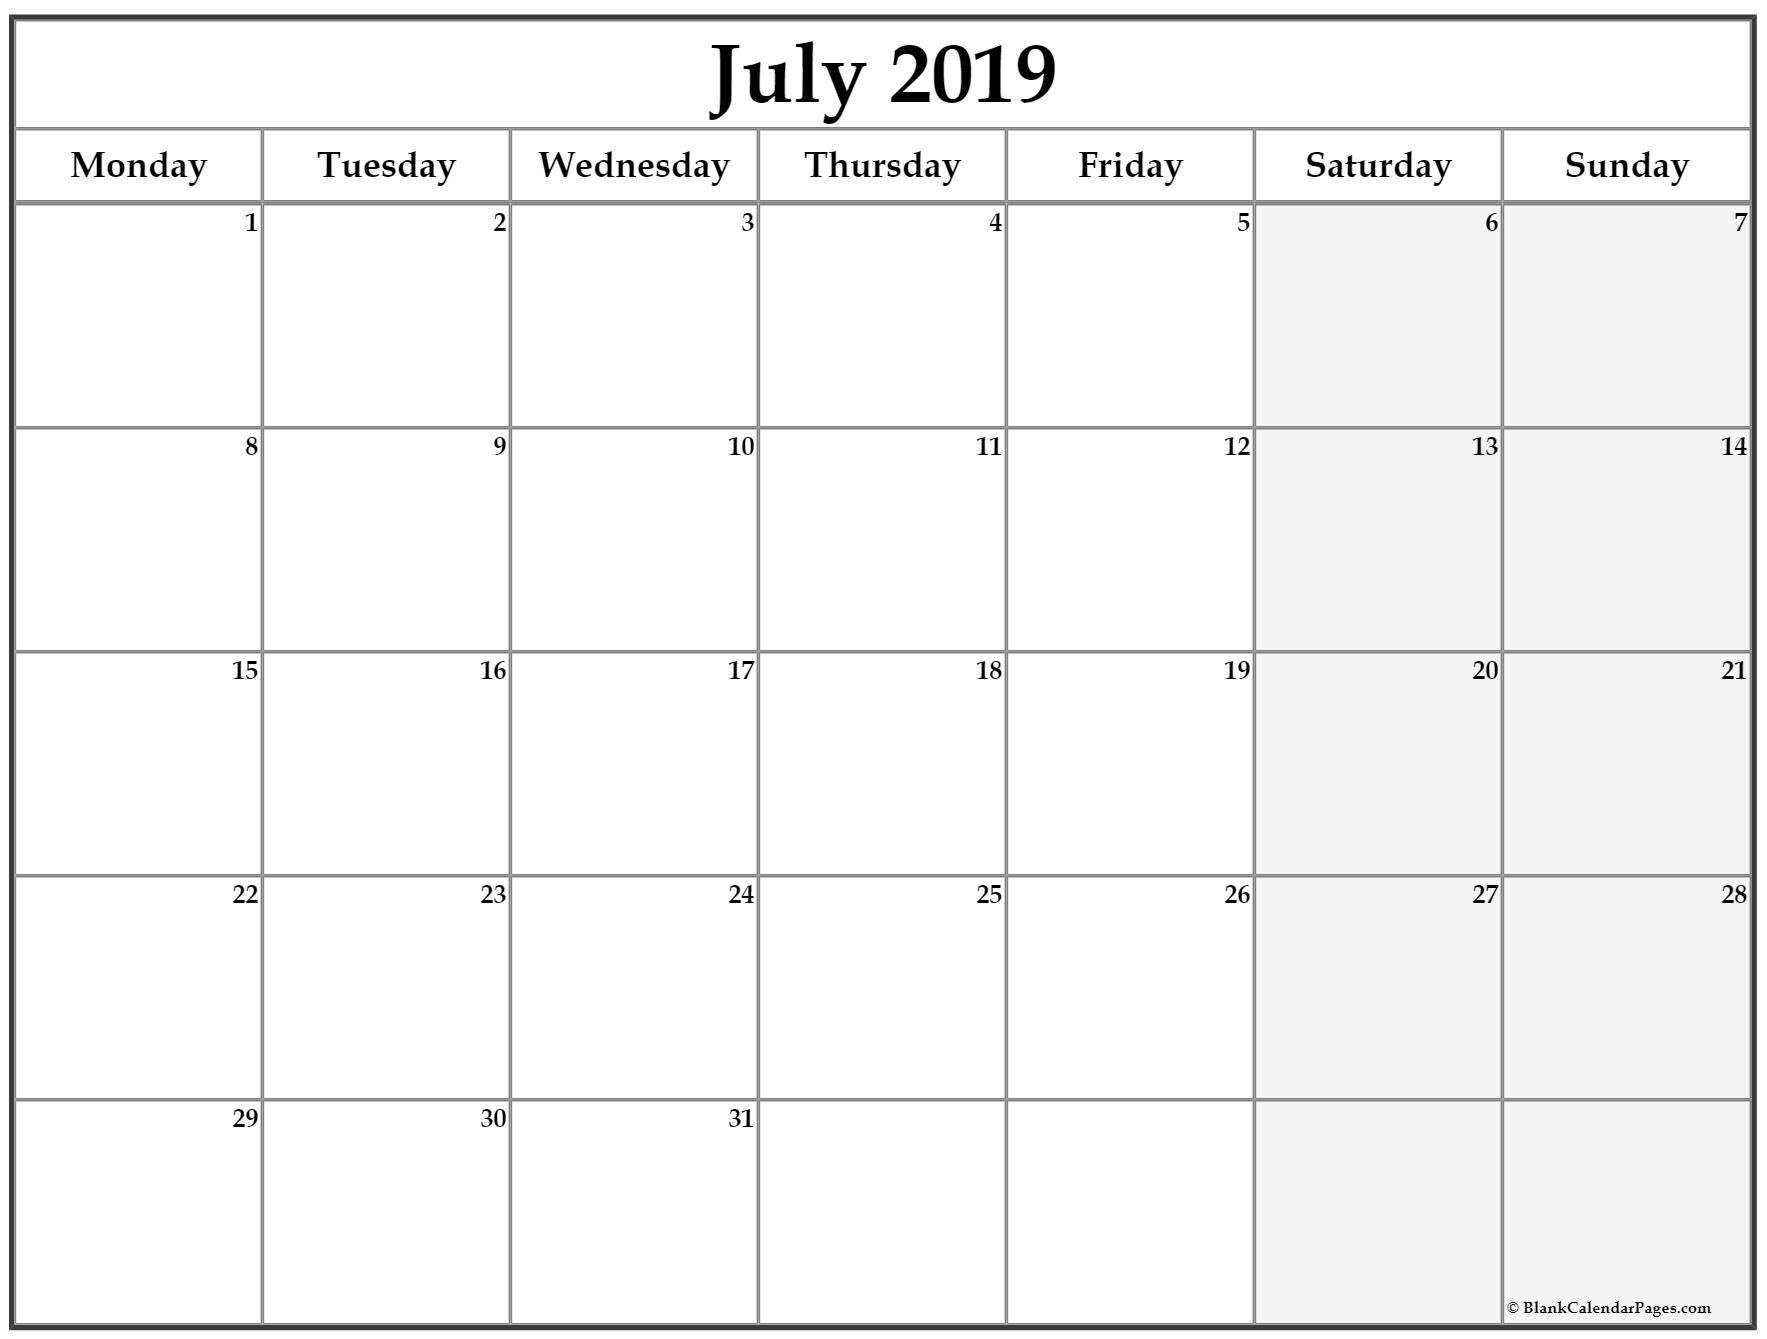 July 2019 Monday Calendar. Monday To Sunday | July Calendar inside 2020 Monday To Sunday Calendar Printable